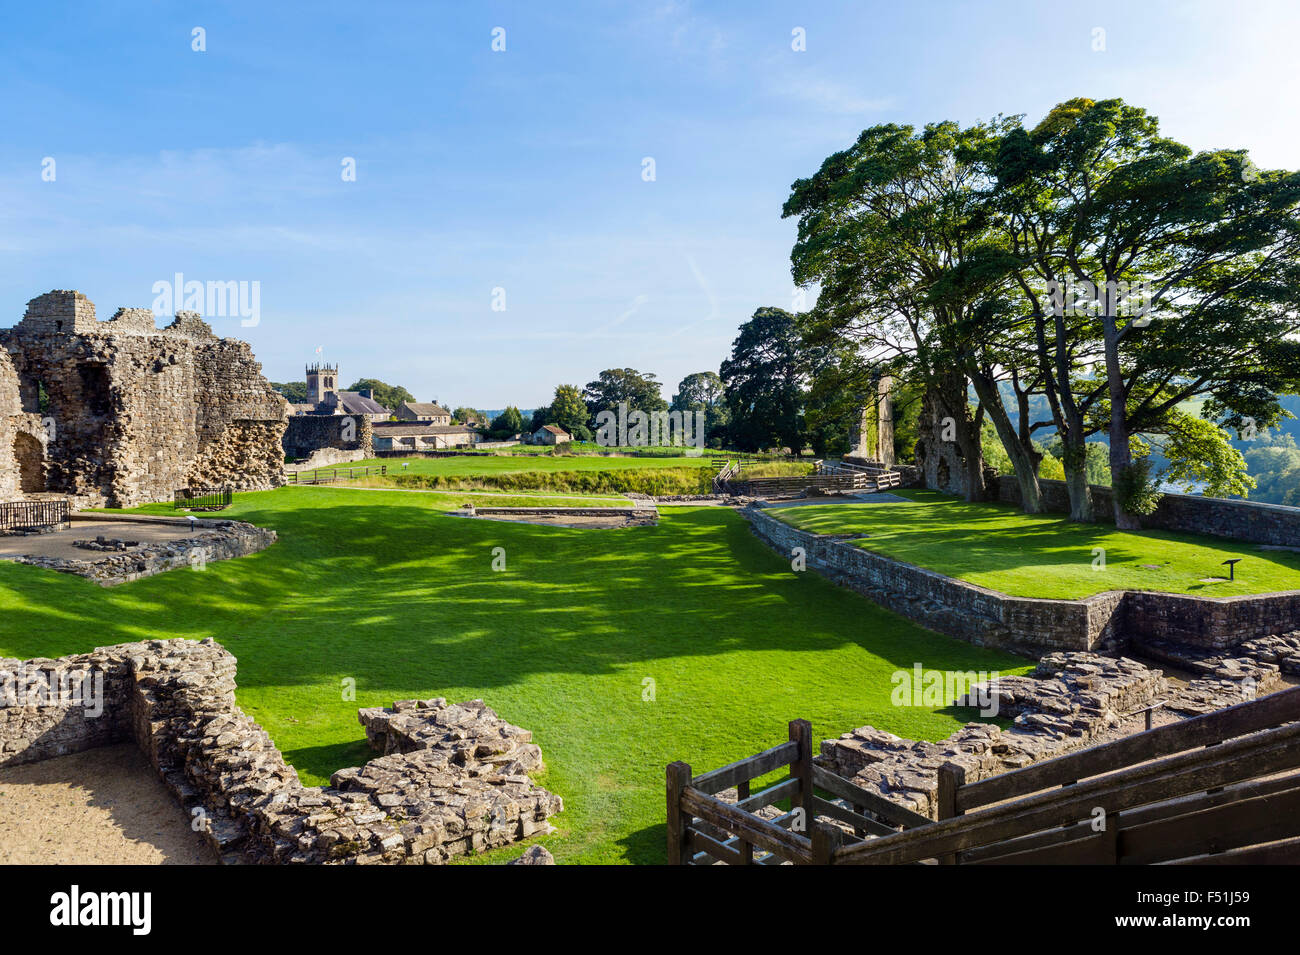 The Inner Ward of the castle in the town of Barnard Castle, County Durham, England, UK - Stock Image